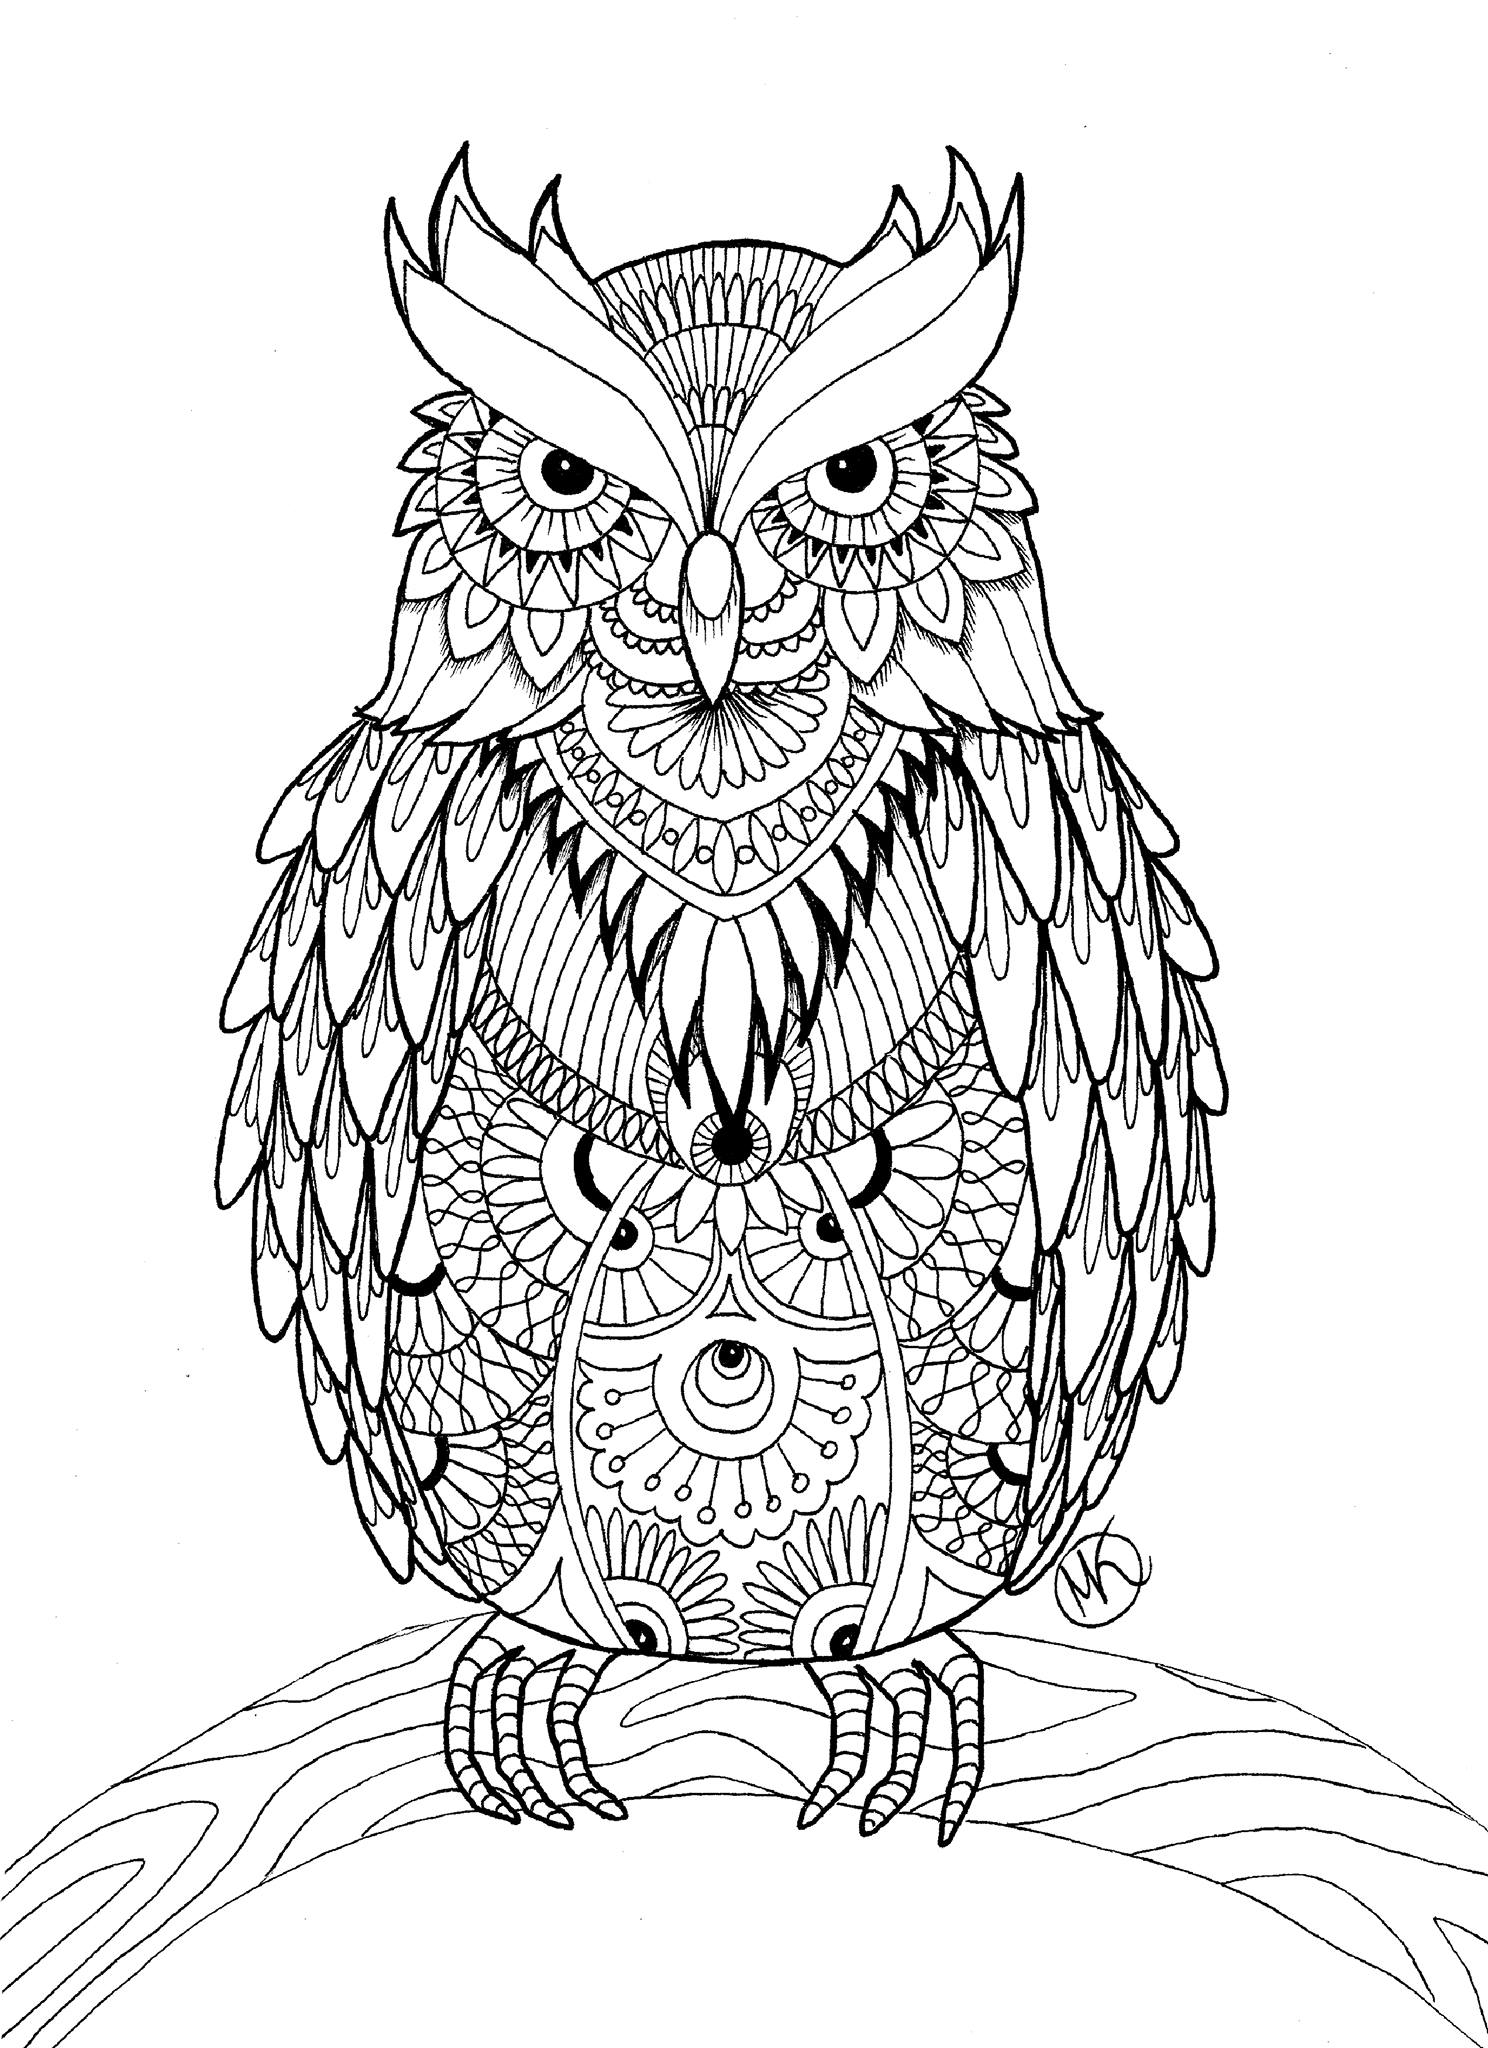 Printable Complex Coloring Pages For Adults